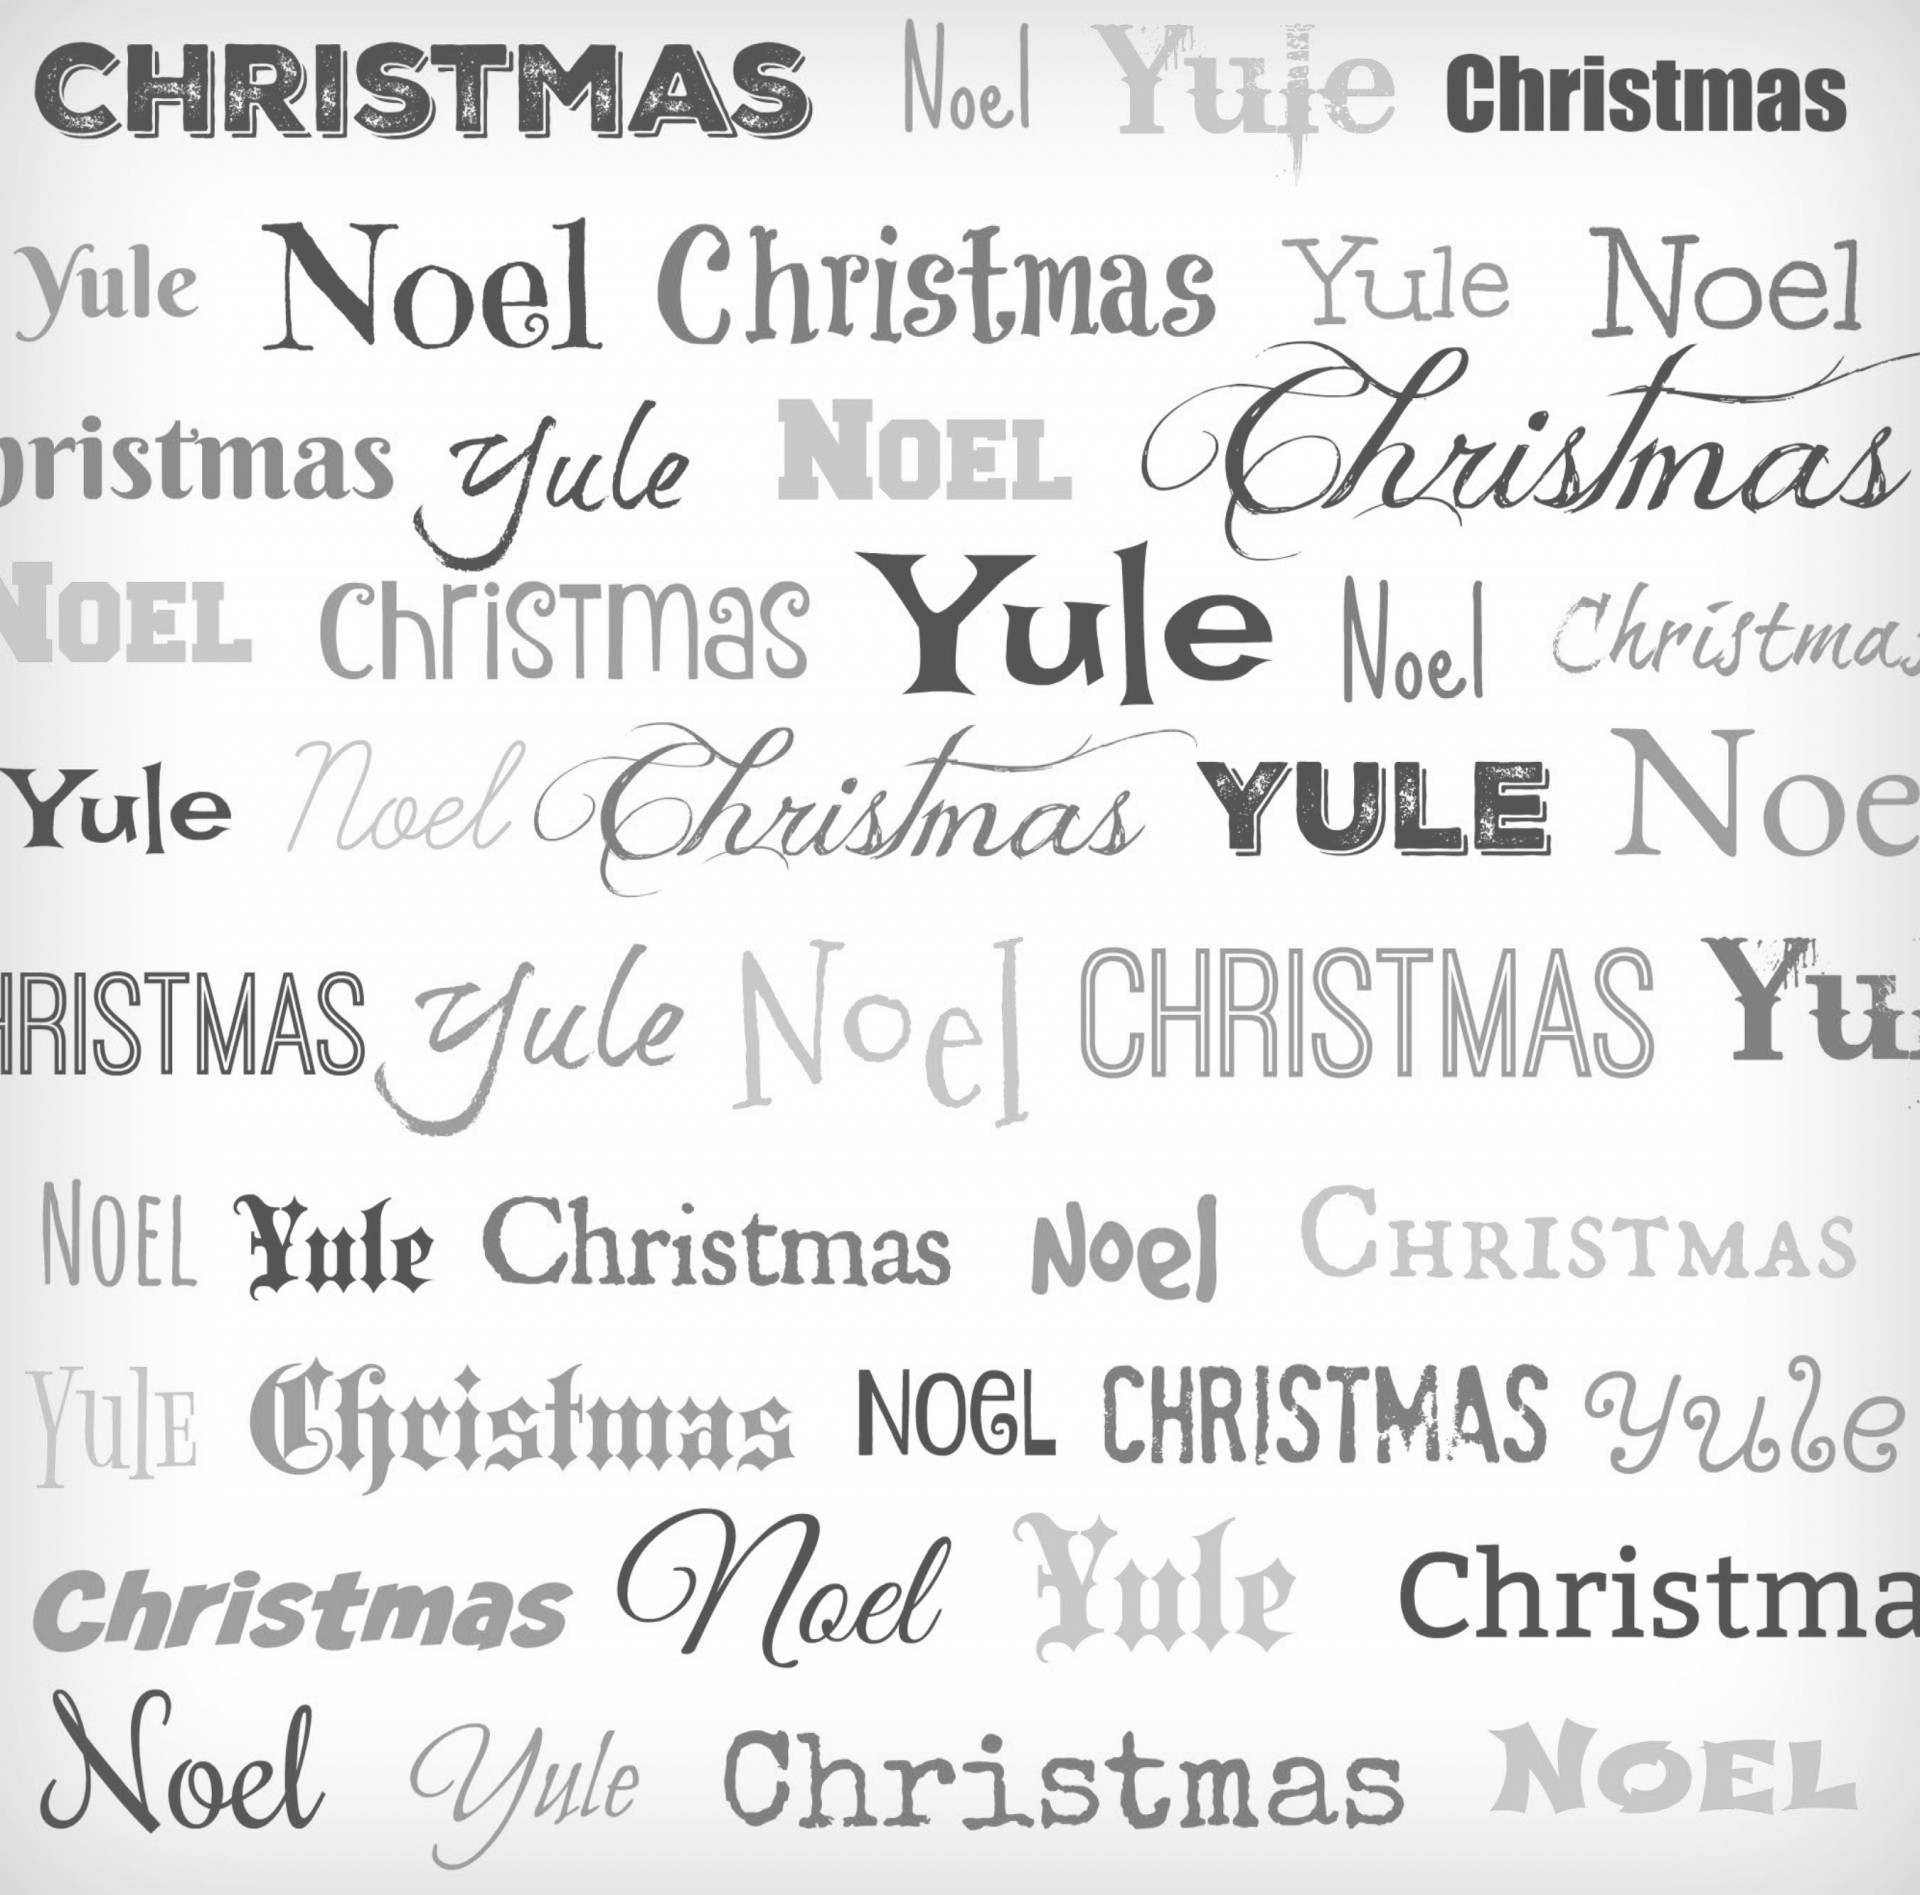 1920x1895 christmas,xmas,holiday,seasonal,words,fonts,yule,noel,